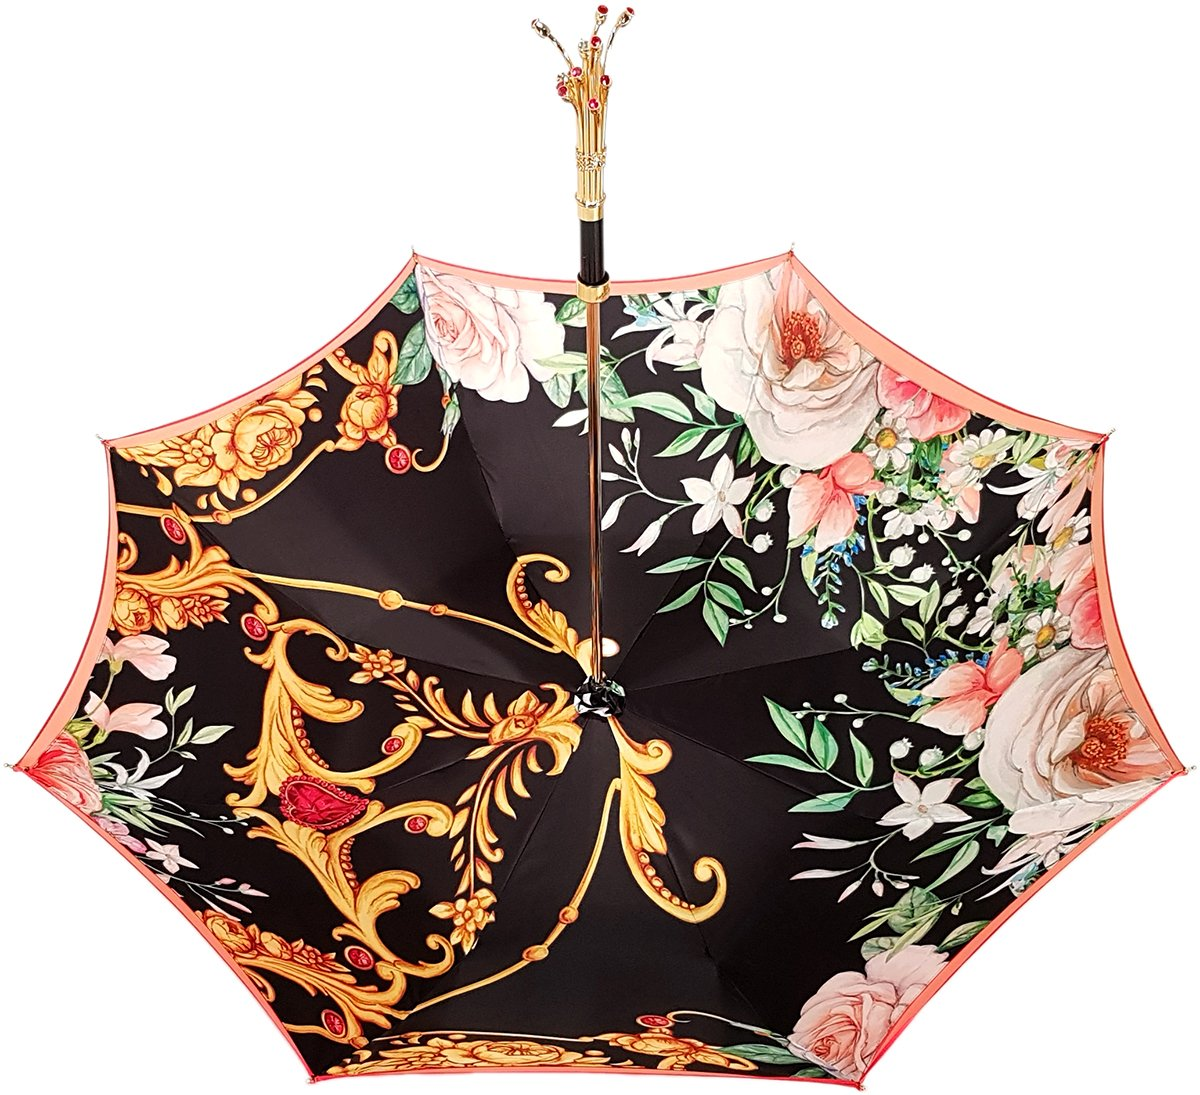 EXPENSIVE UMBRELLA BY IL MARCHESATO